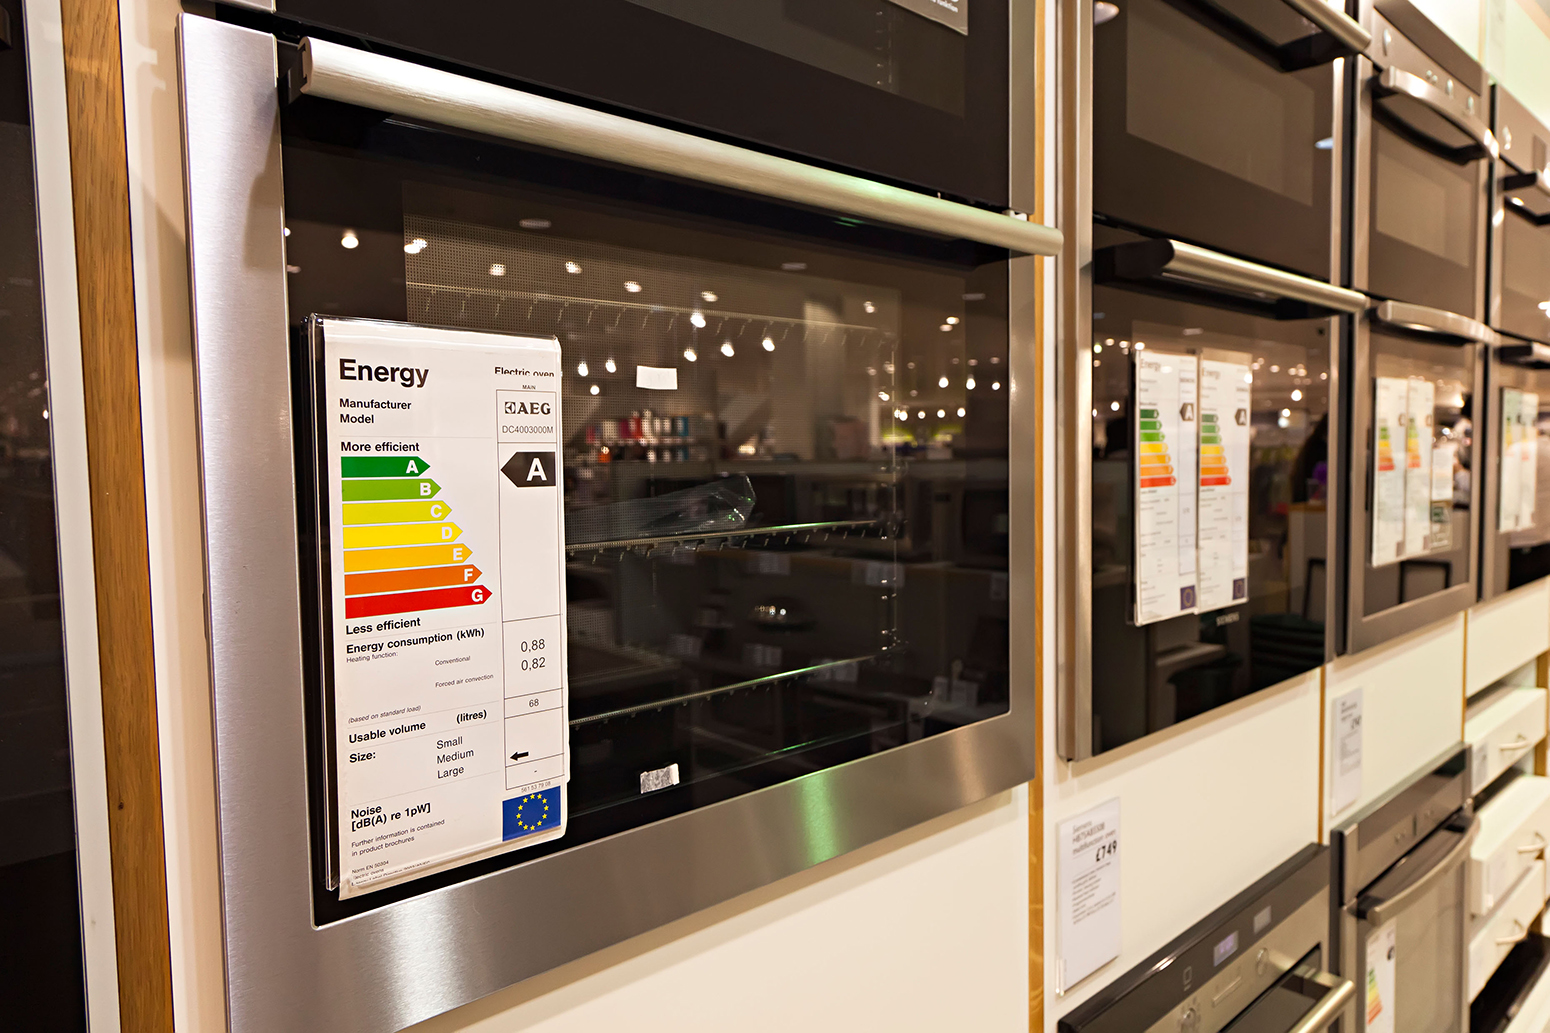 Energy efficiency rating on electric ovens in store UK.